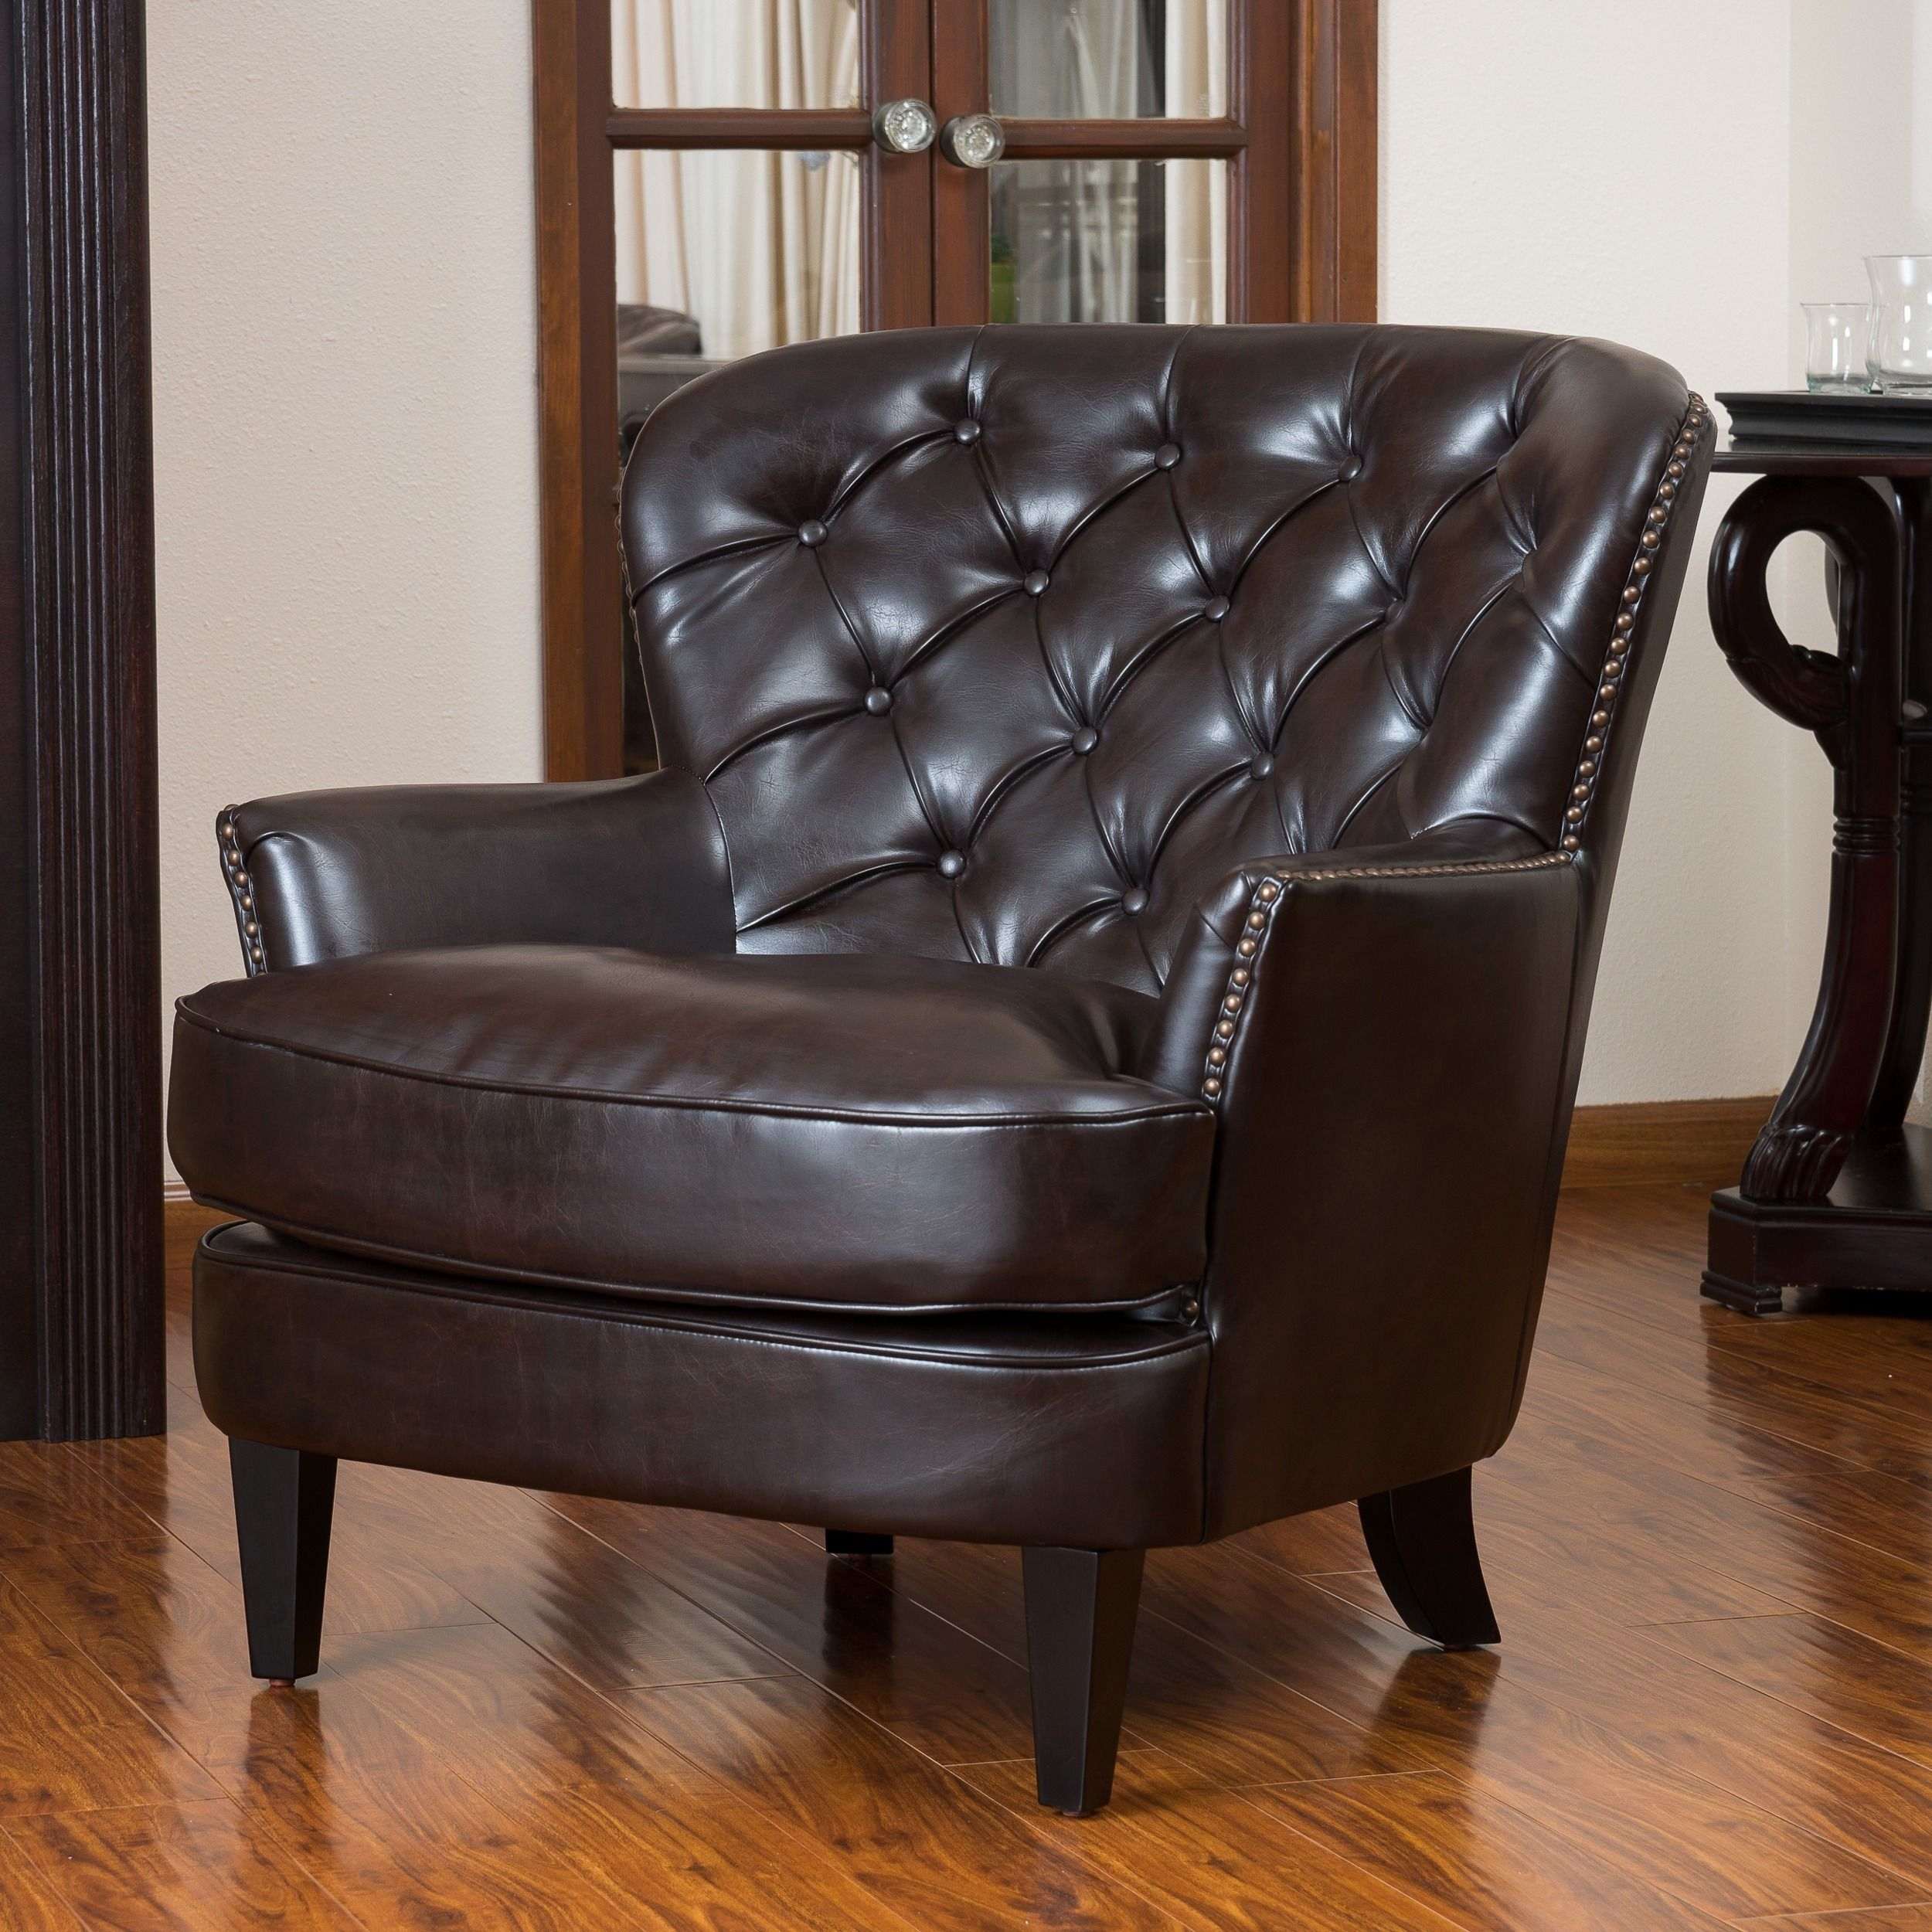 Nice Christopher Knight Home Tafton Tufted Brown Leather Club Chair |  Overstock.com Shopping   The